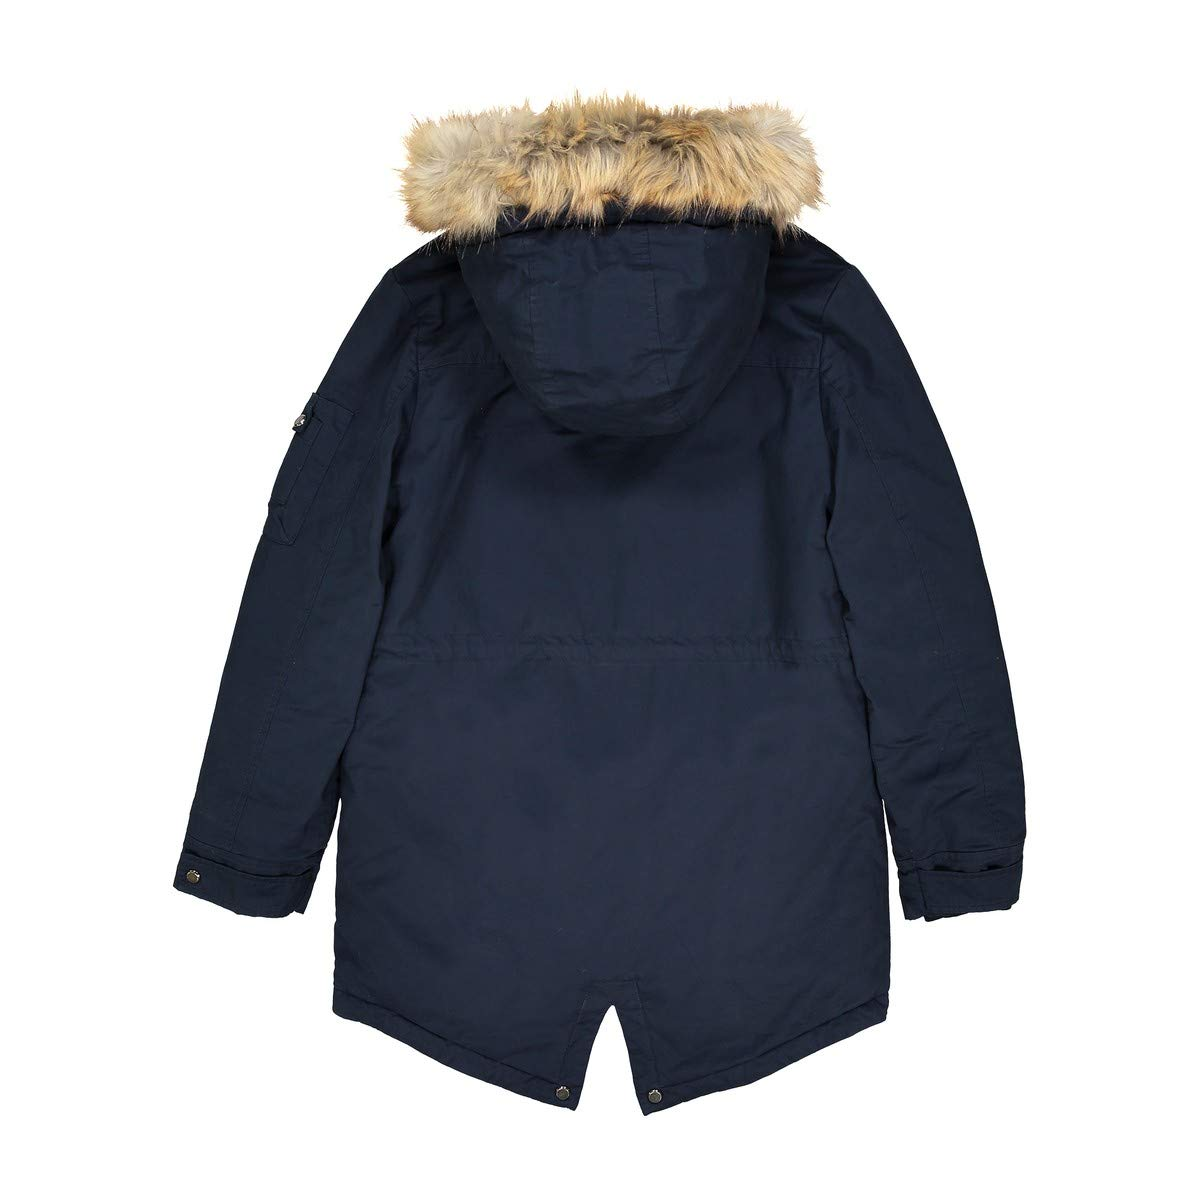 La Redoute Collections Big Boys Warm Parka, 10-16 Years Blue Size 16 Years - 68 in. by La Redoute (Image #5)